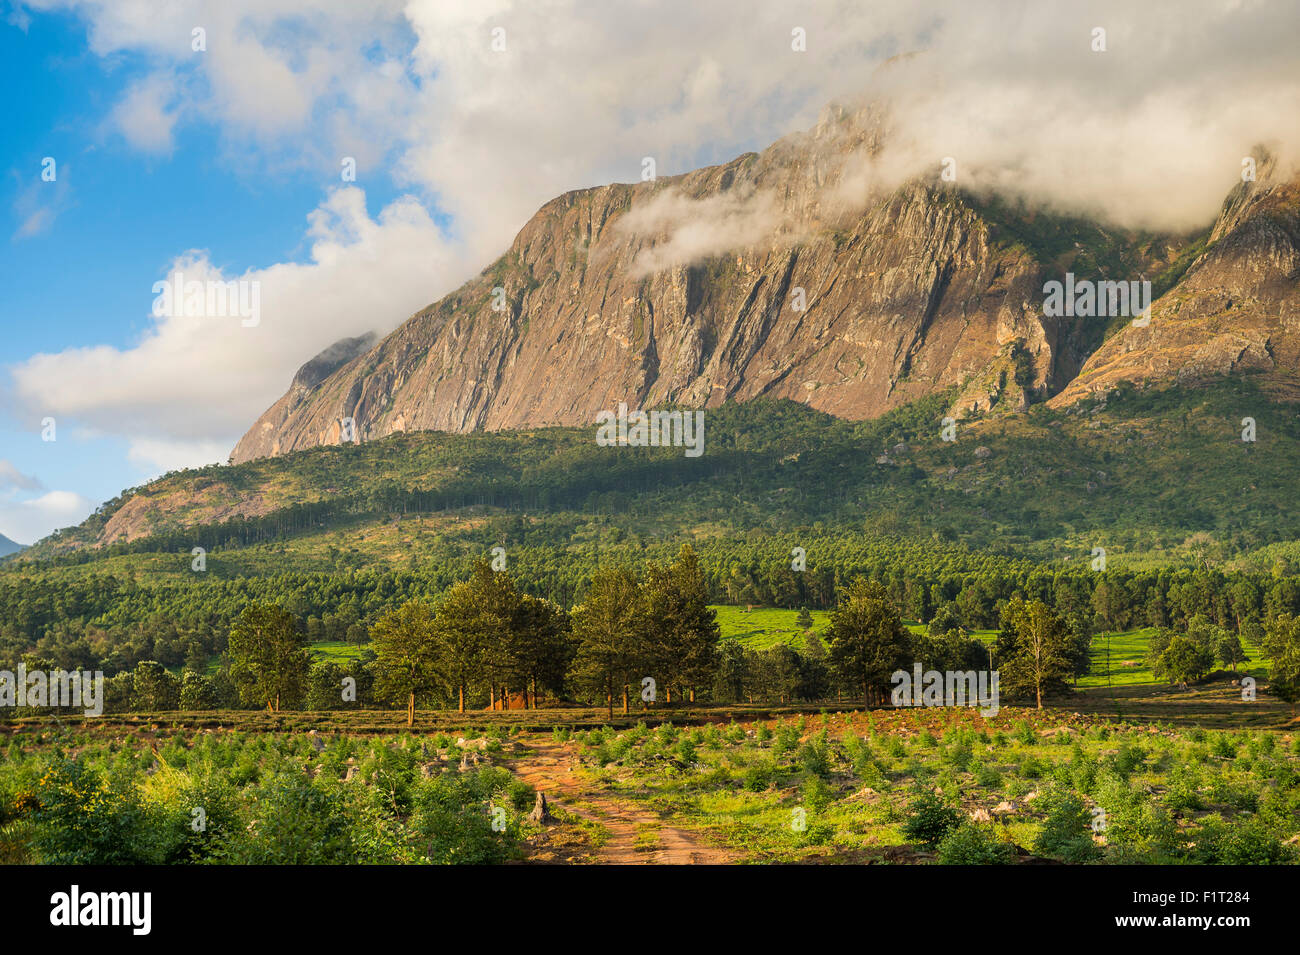 Mount Mulanje at sunset, Malawi, Africa - Stock Image